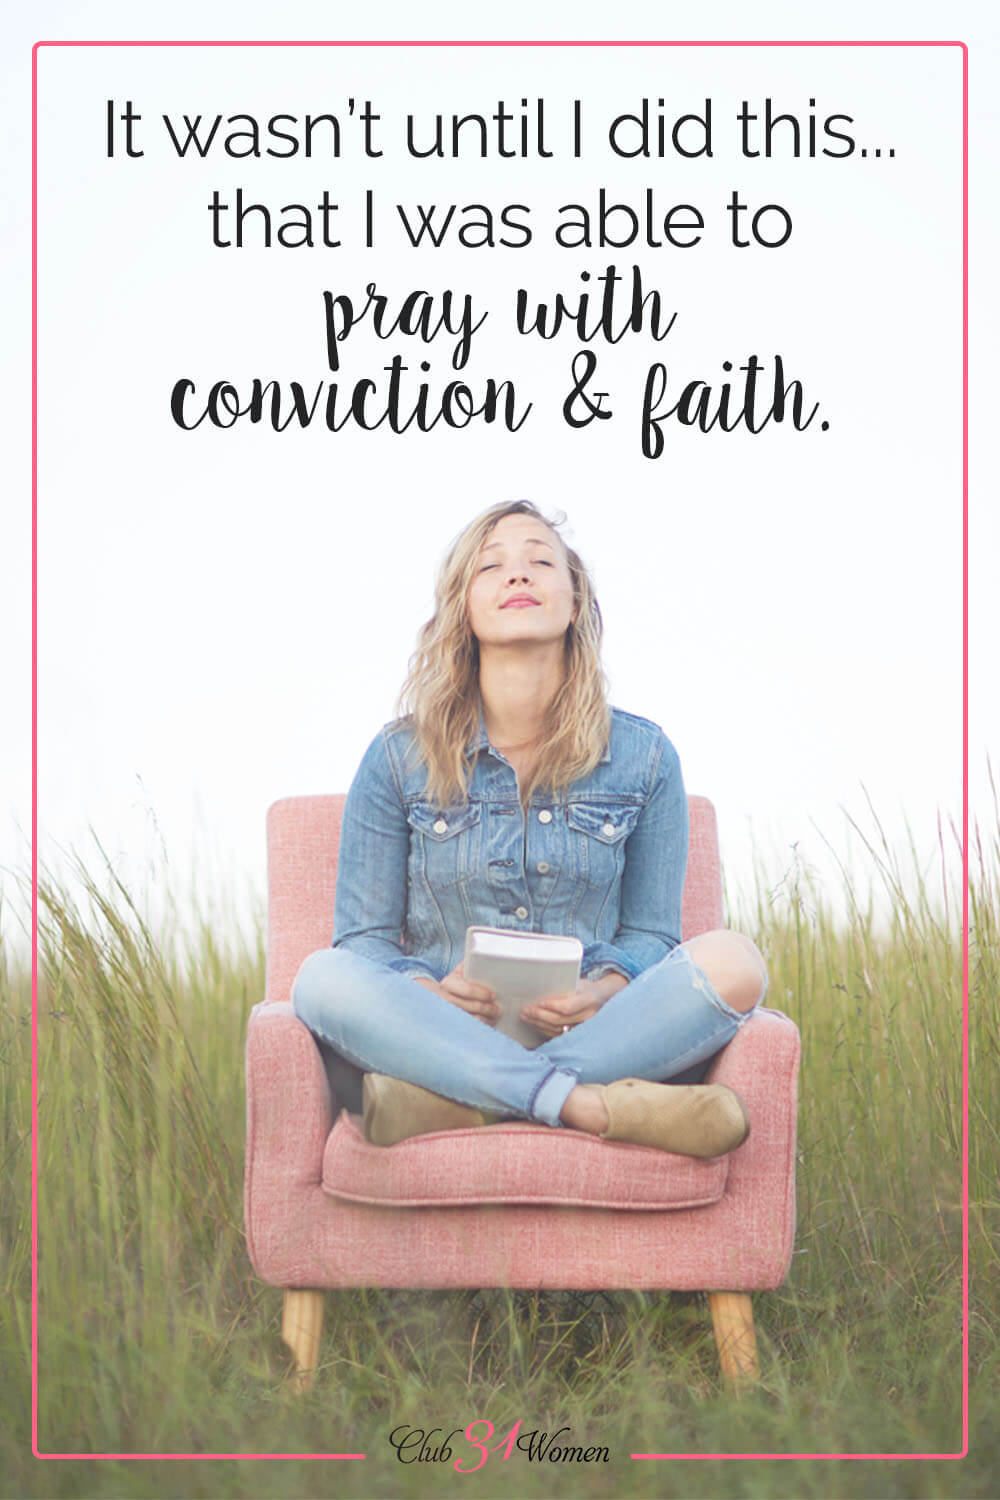 Prayer isn't just about the right tools or timing or discipline. If we don't come to God with conviction and belief, none of it matters. via @Club31Women